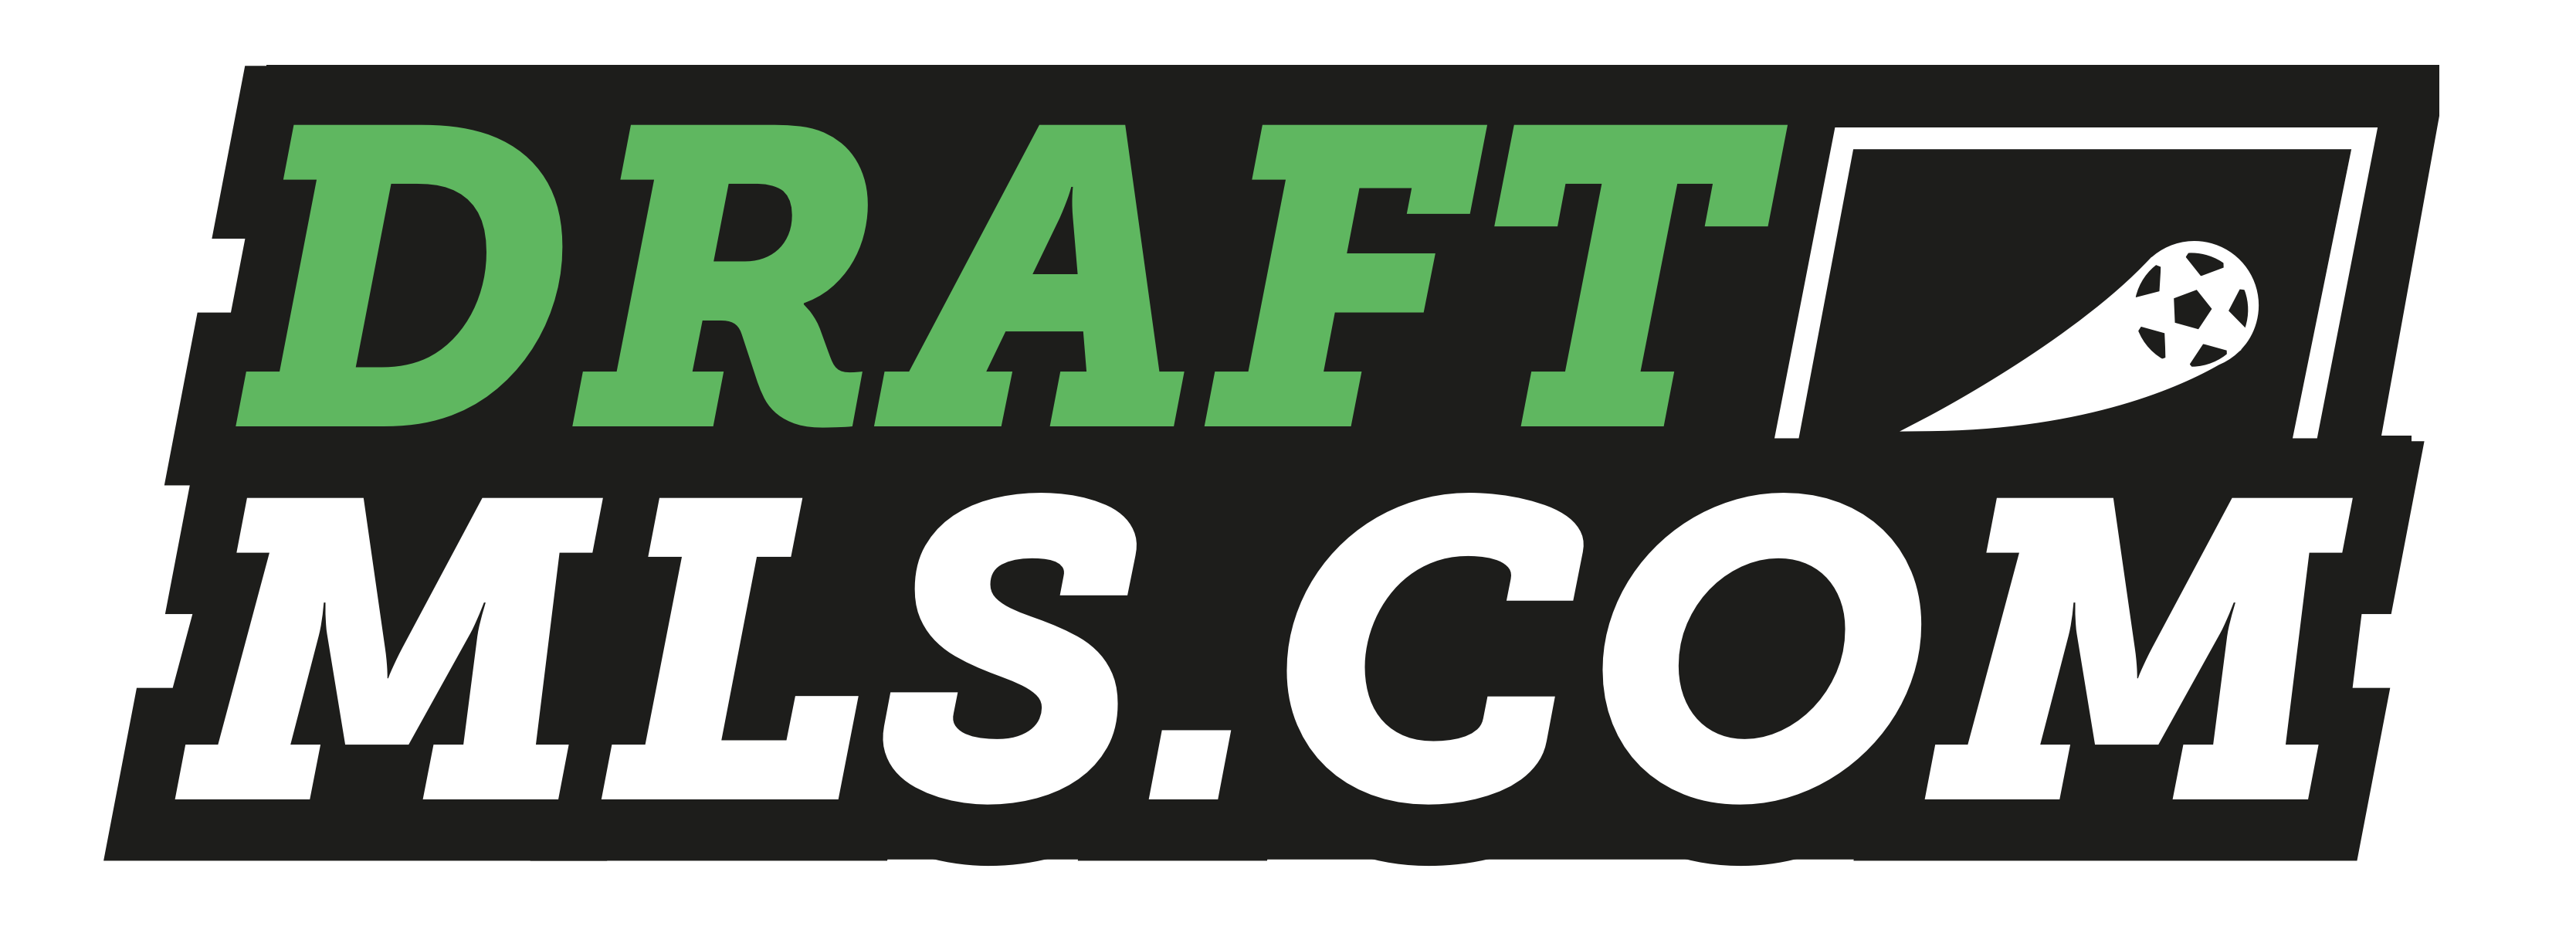 Mls draft fantasy soccer 2017 for major league soccer football terms and conditions sciox Choice Image